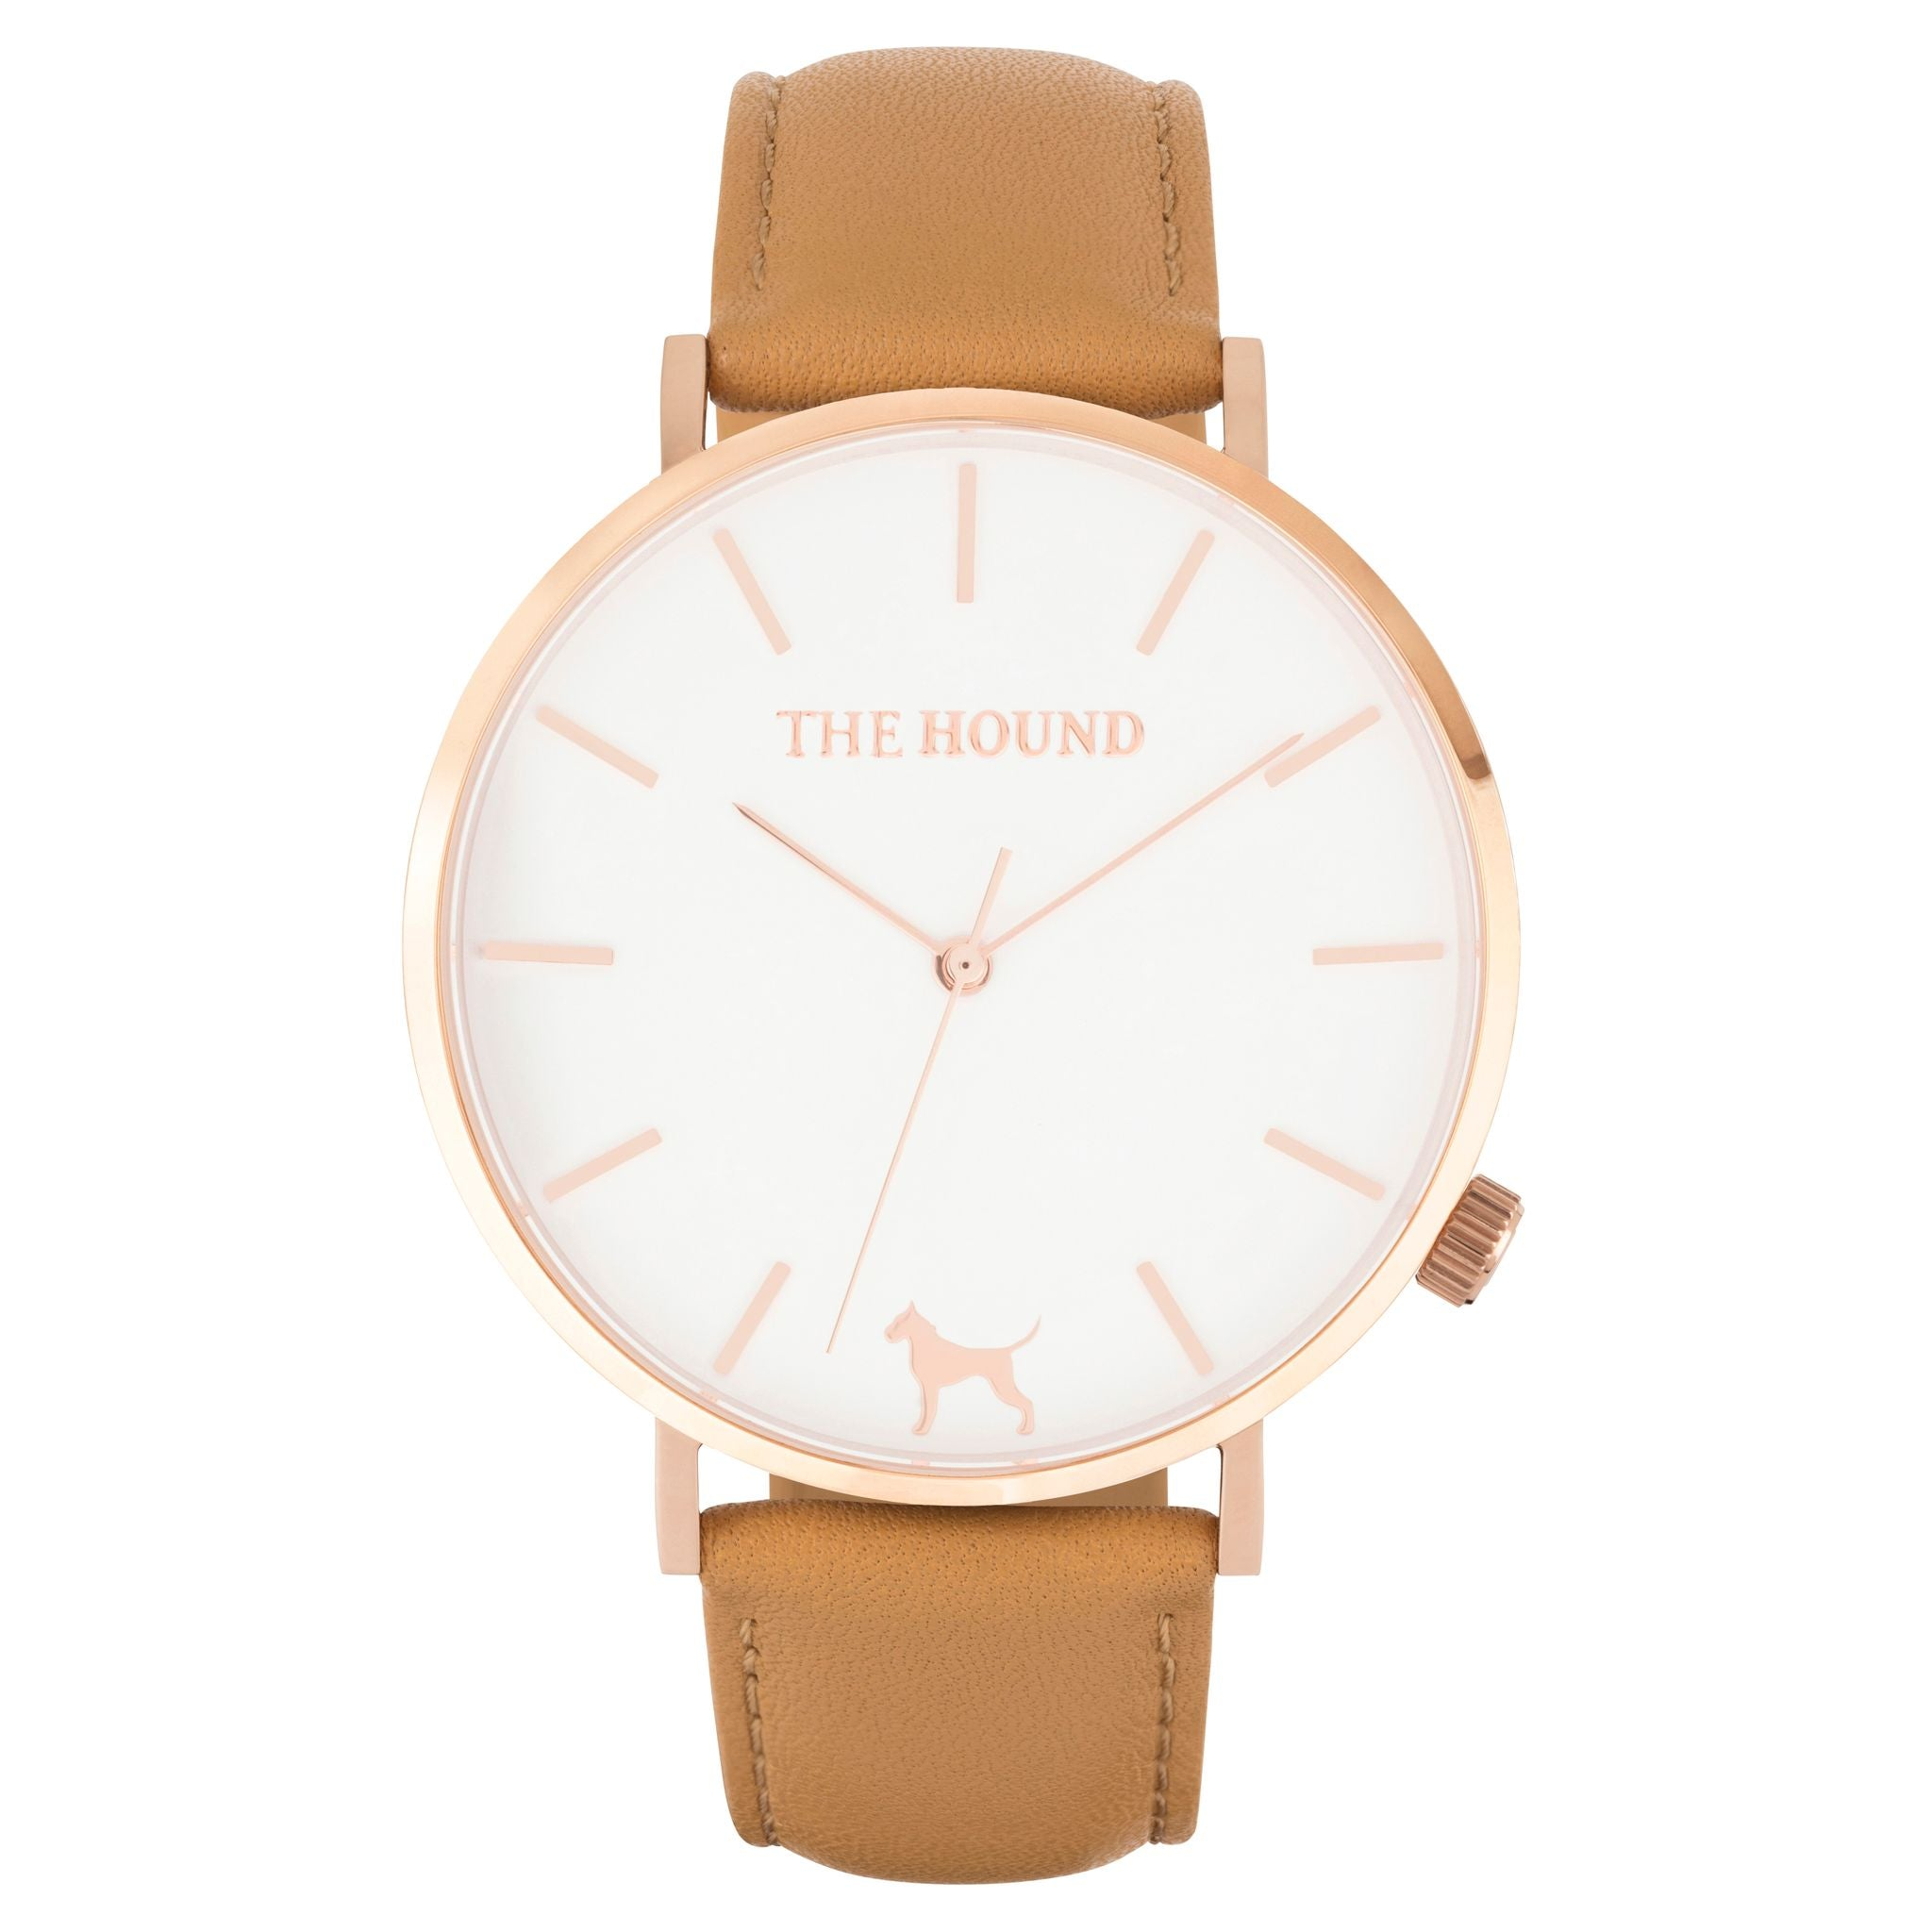 Rose gold & white face watch with camel leather